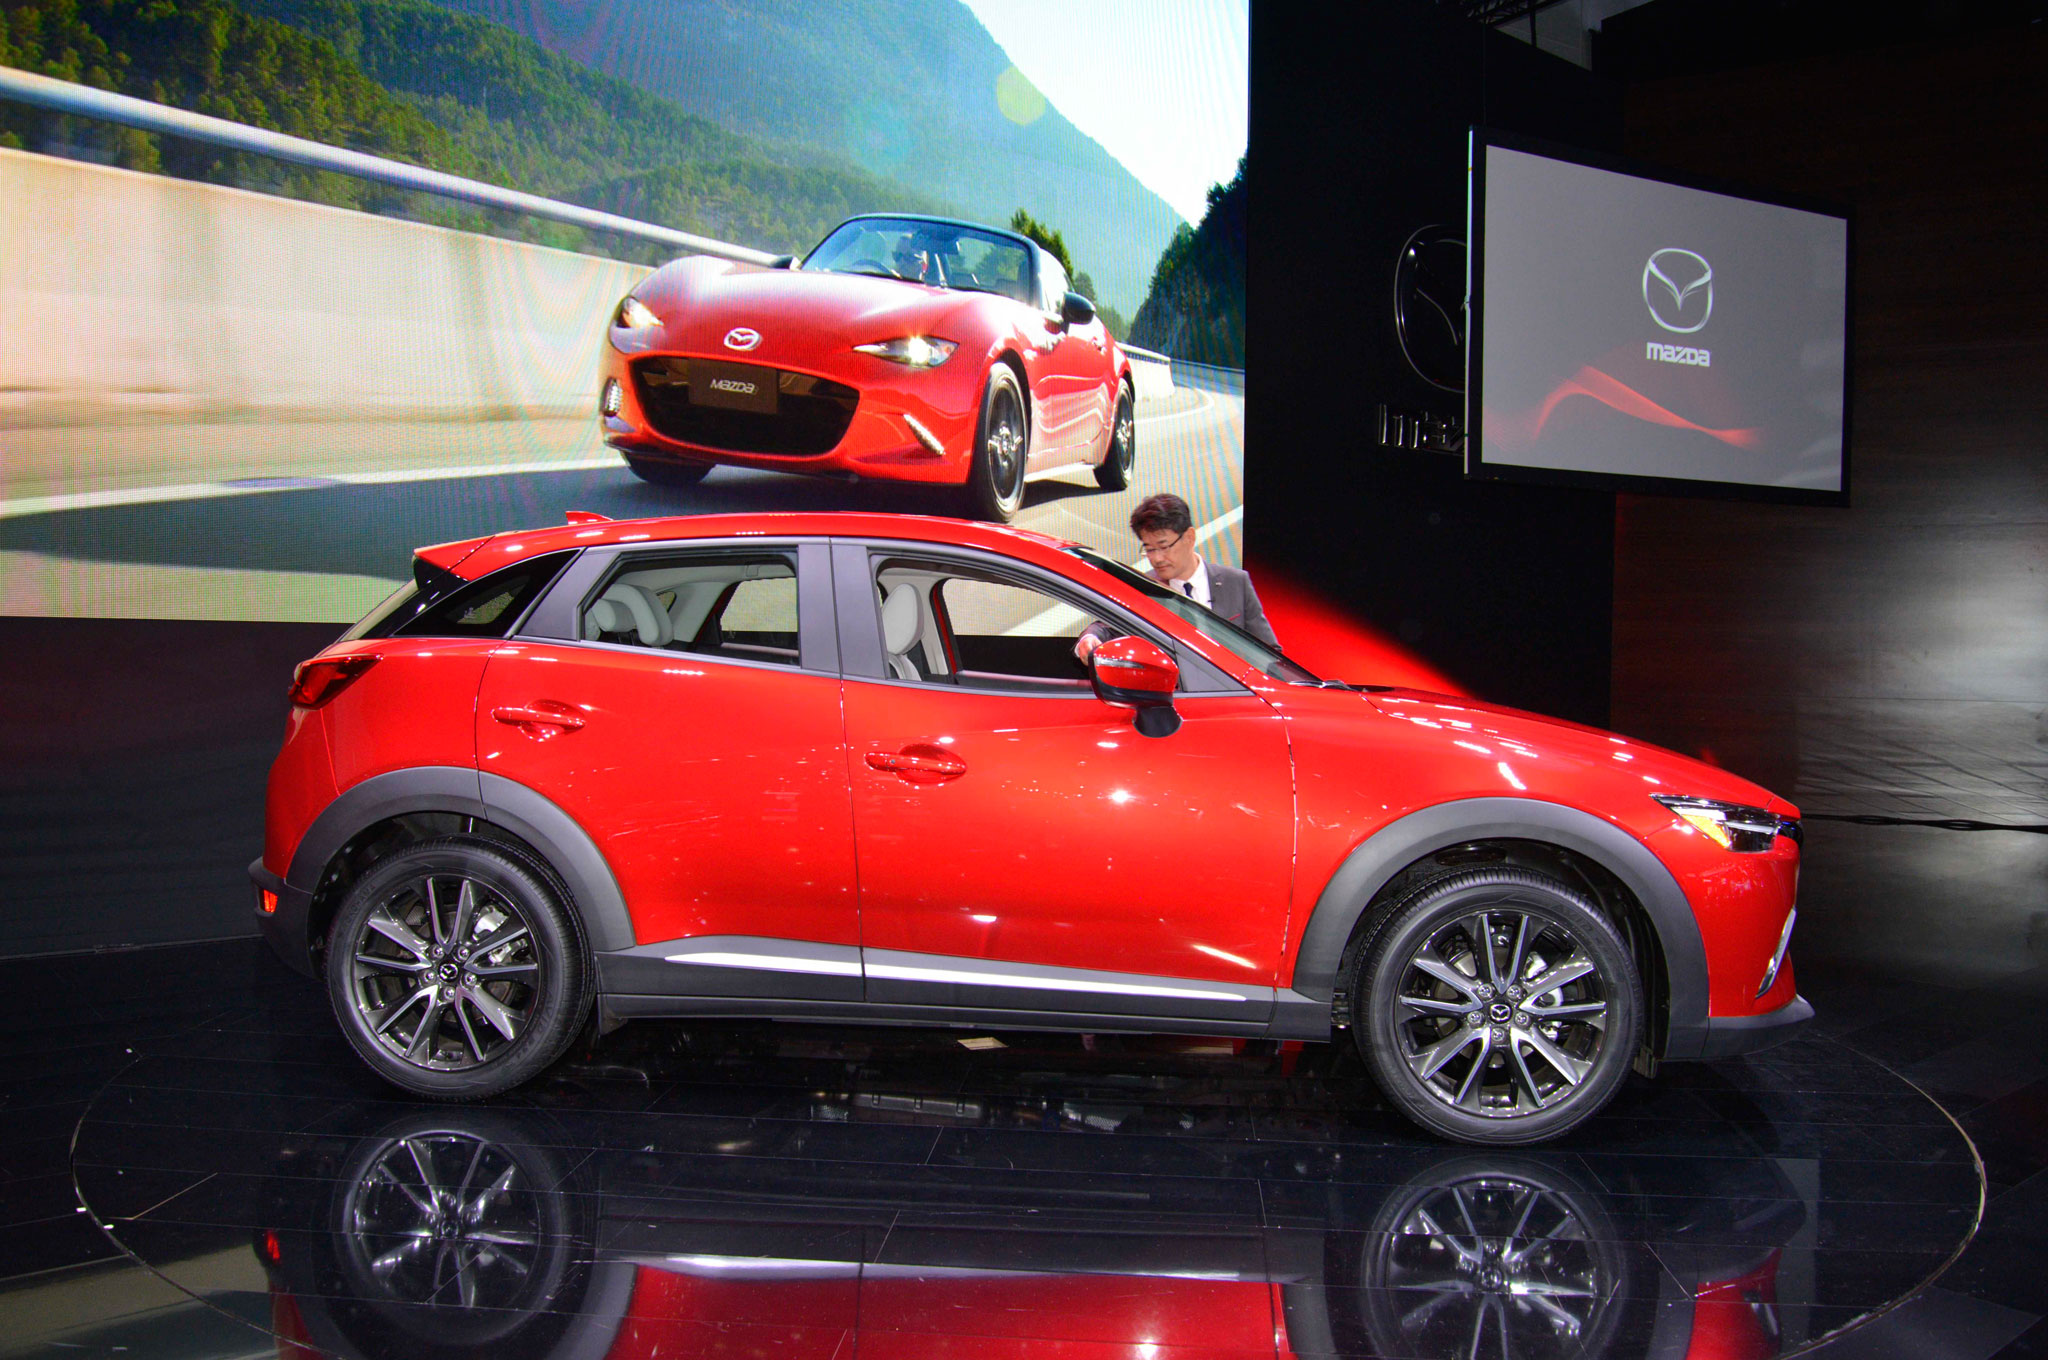 2016 mazda cx 3 preview 1108 cars performance reviews and test drive. Black Bedroom Furniture Sets. Home Design Ideas